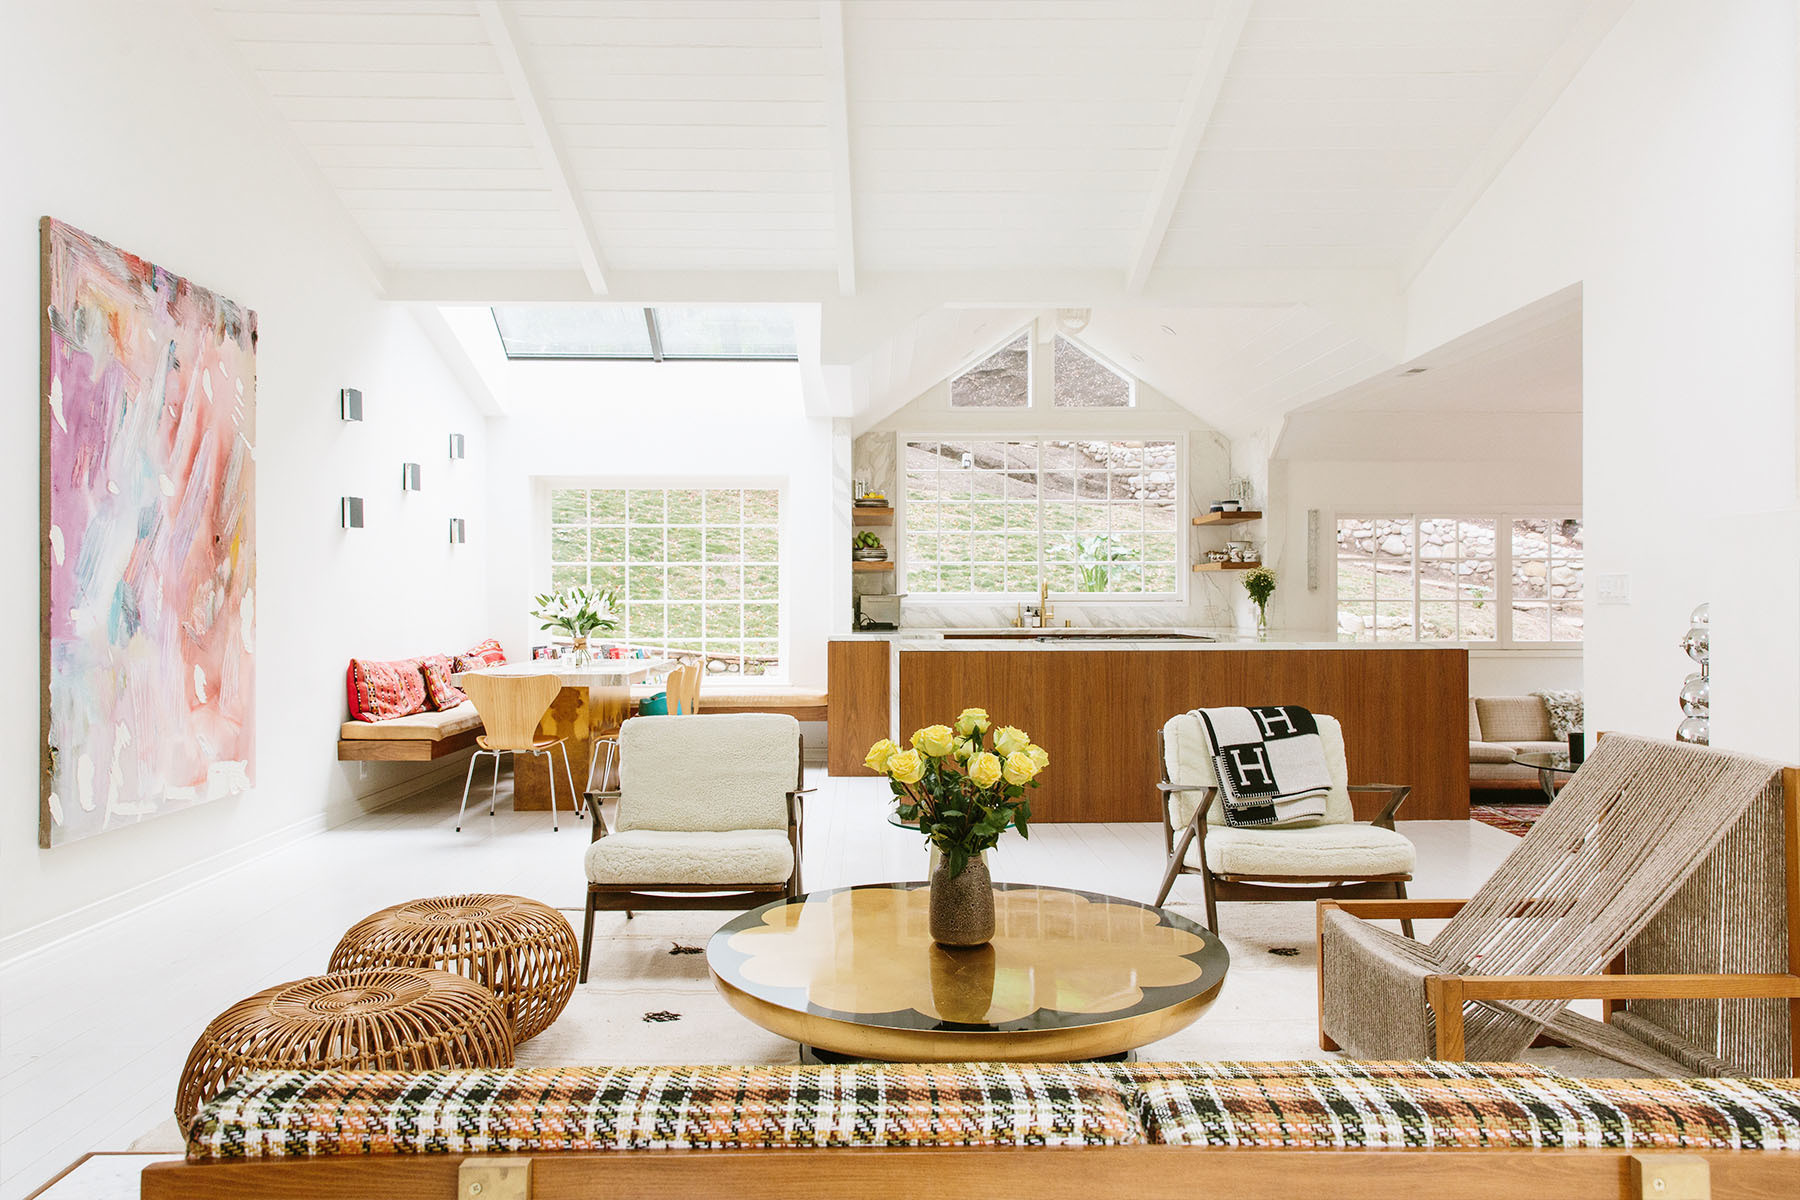 Shelley and Teddy Sanders broke down walls and cut out skylights to give their Beverly Hills home a dreamy sense of flow. Dashiell Manley Art | Vintage Furniture | Couples own Lighting | Lawrence of La Brea Rug.